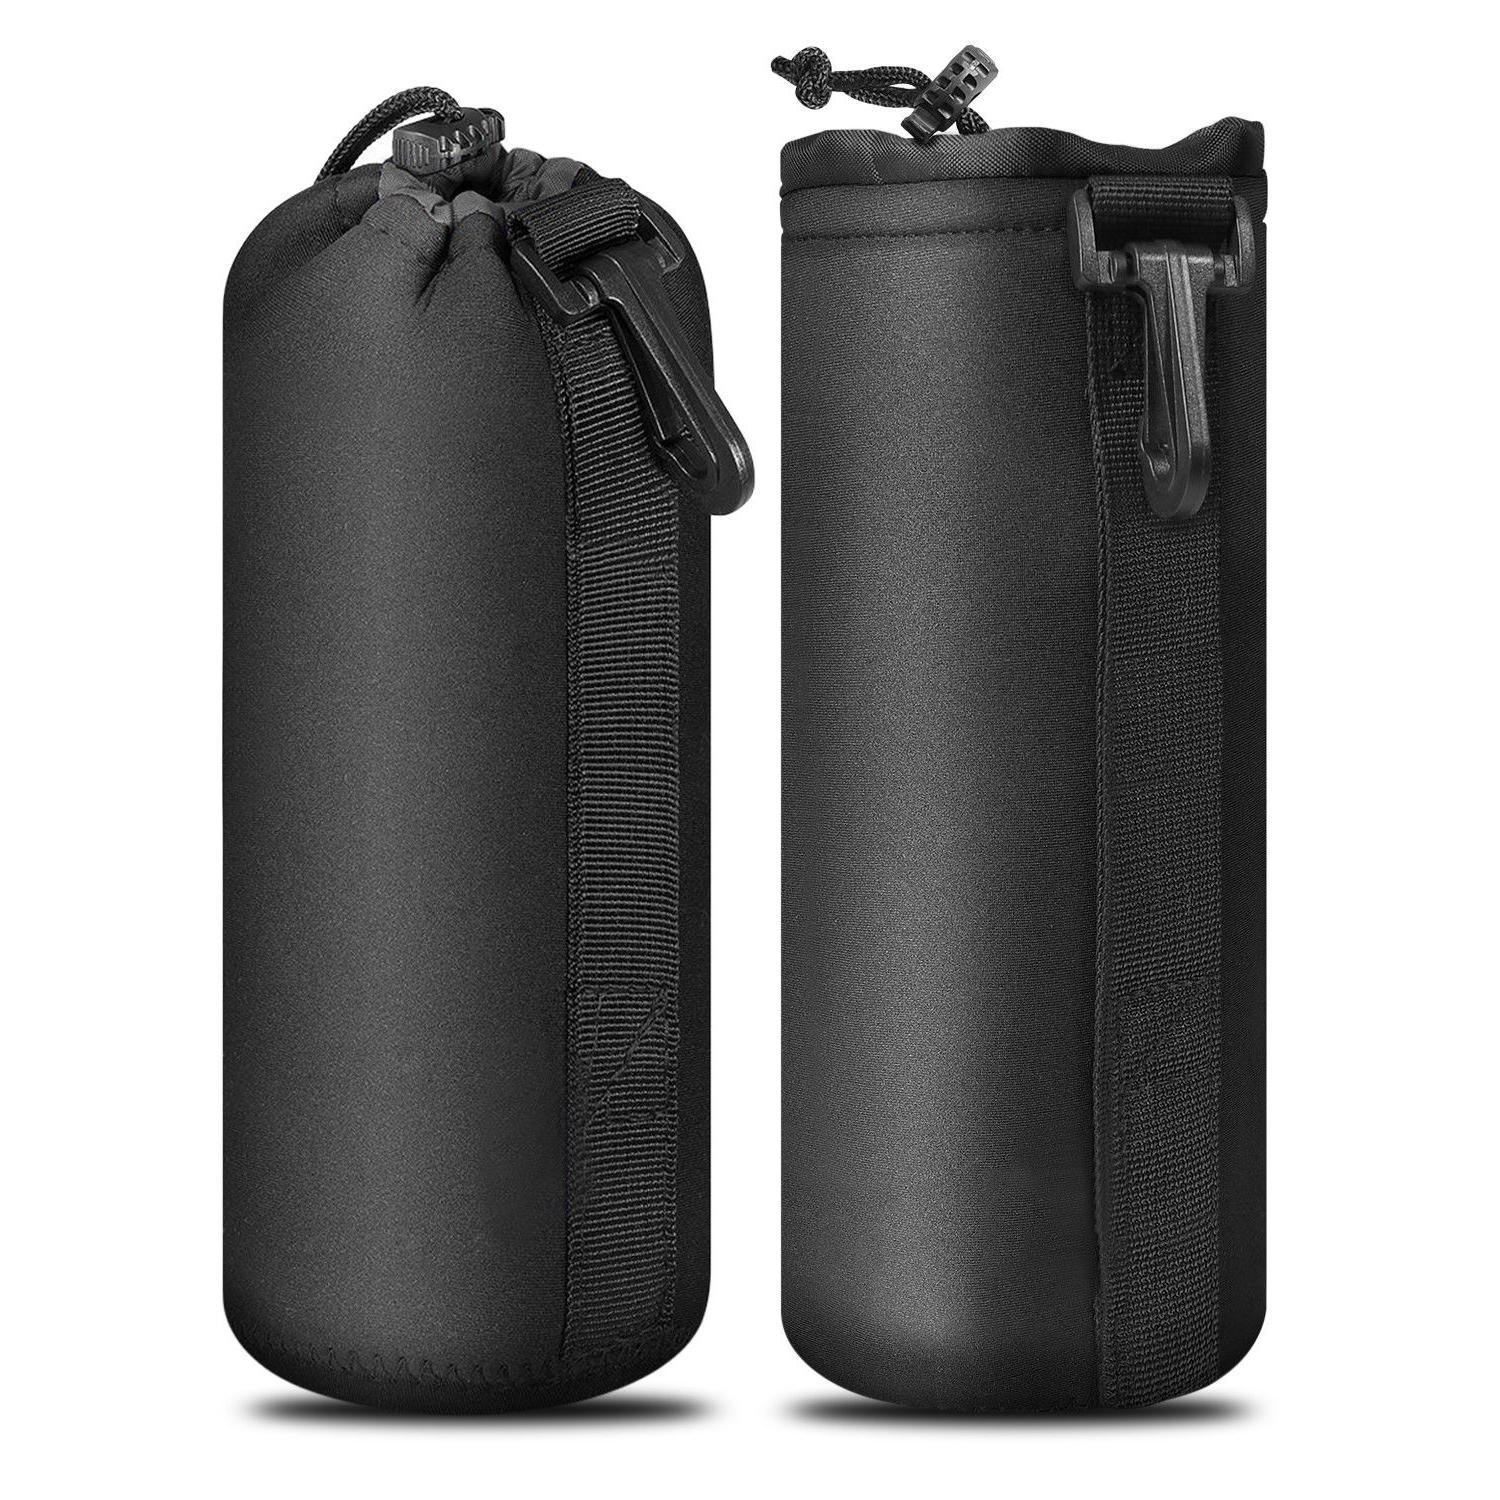 Soft Neoprene Protective Carry Bag Case for S M